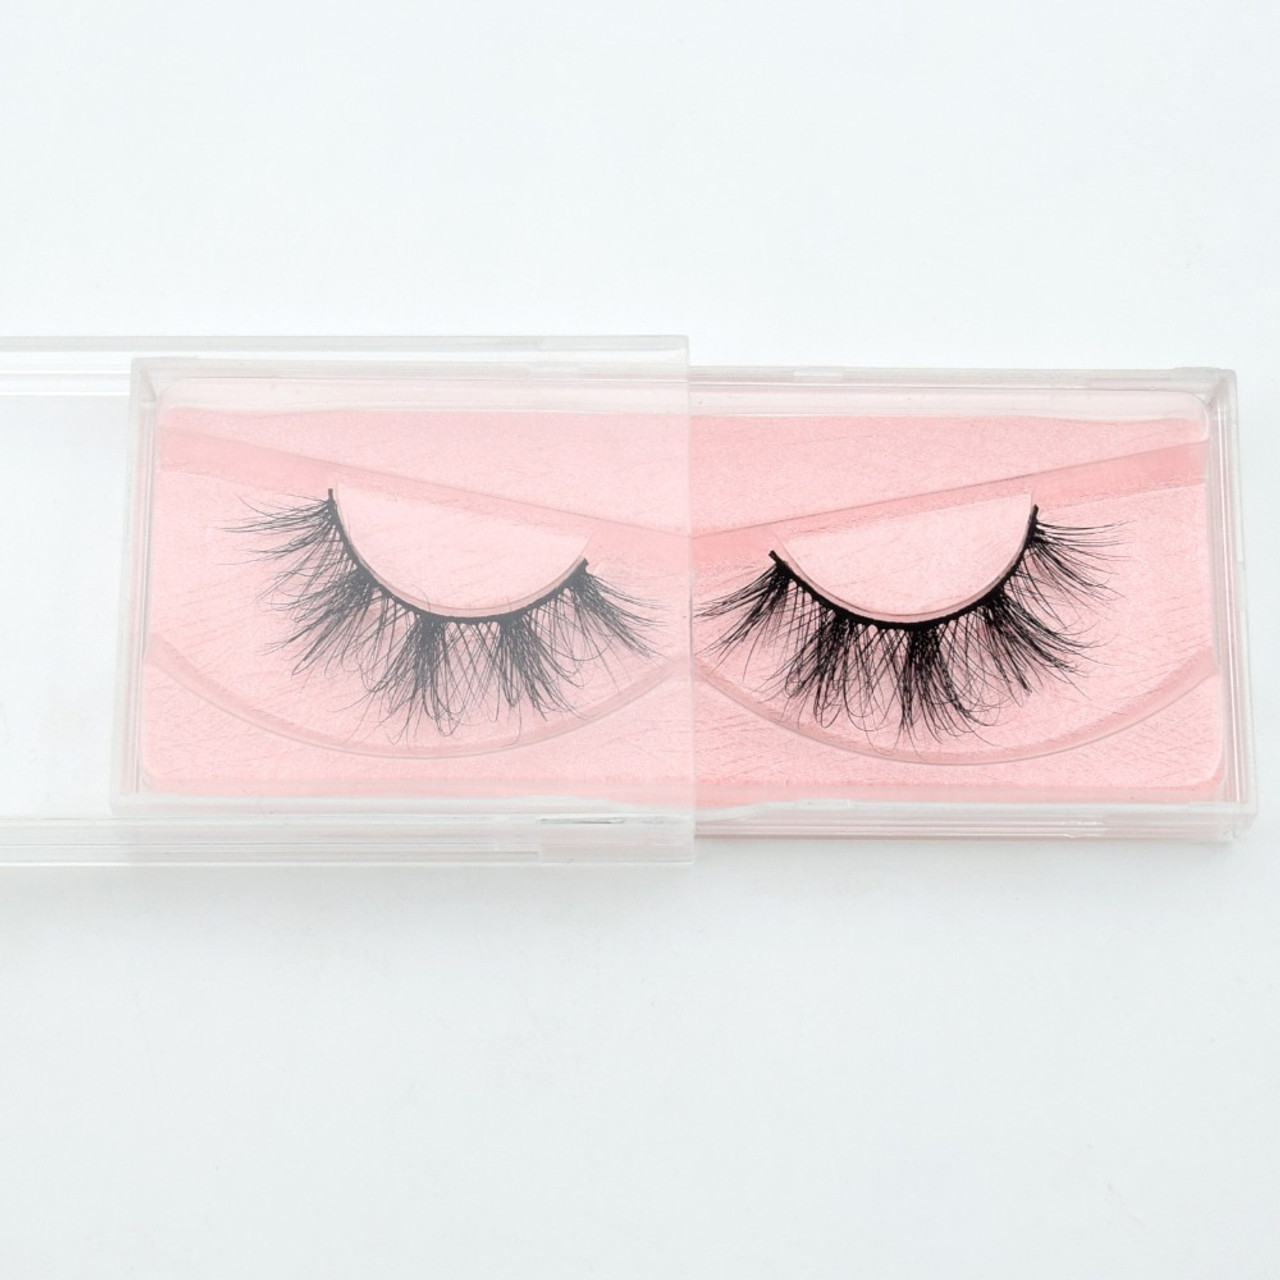 0f68d770984 ... Visofree Mink Lashes 3D Mink Eyelashes 100% Cruelty free Lashes  Handmade Reusable Natural Eyelashes Popular